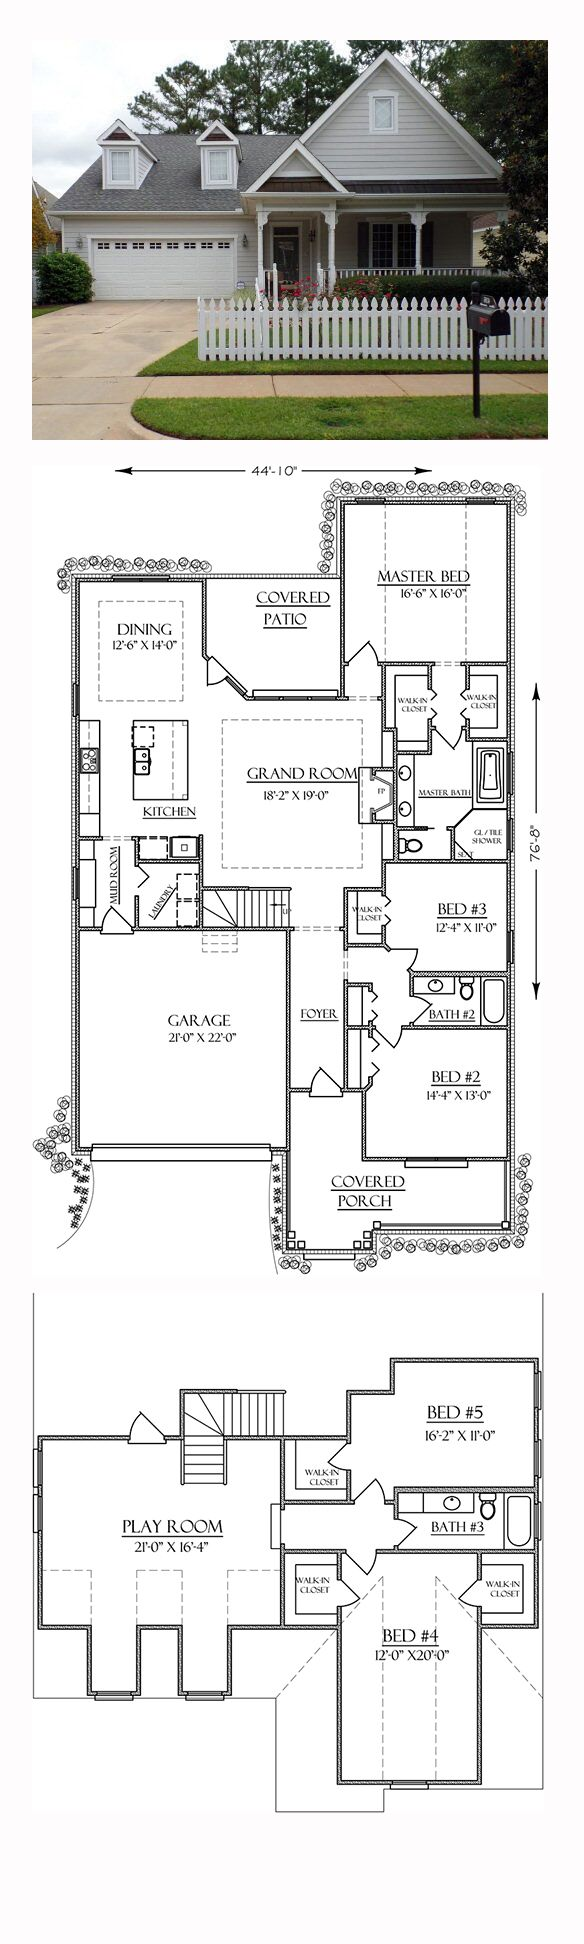 Best 25 5 bedroom house plans ideas on pinterest 4 New construction home plans